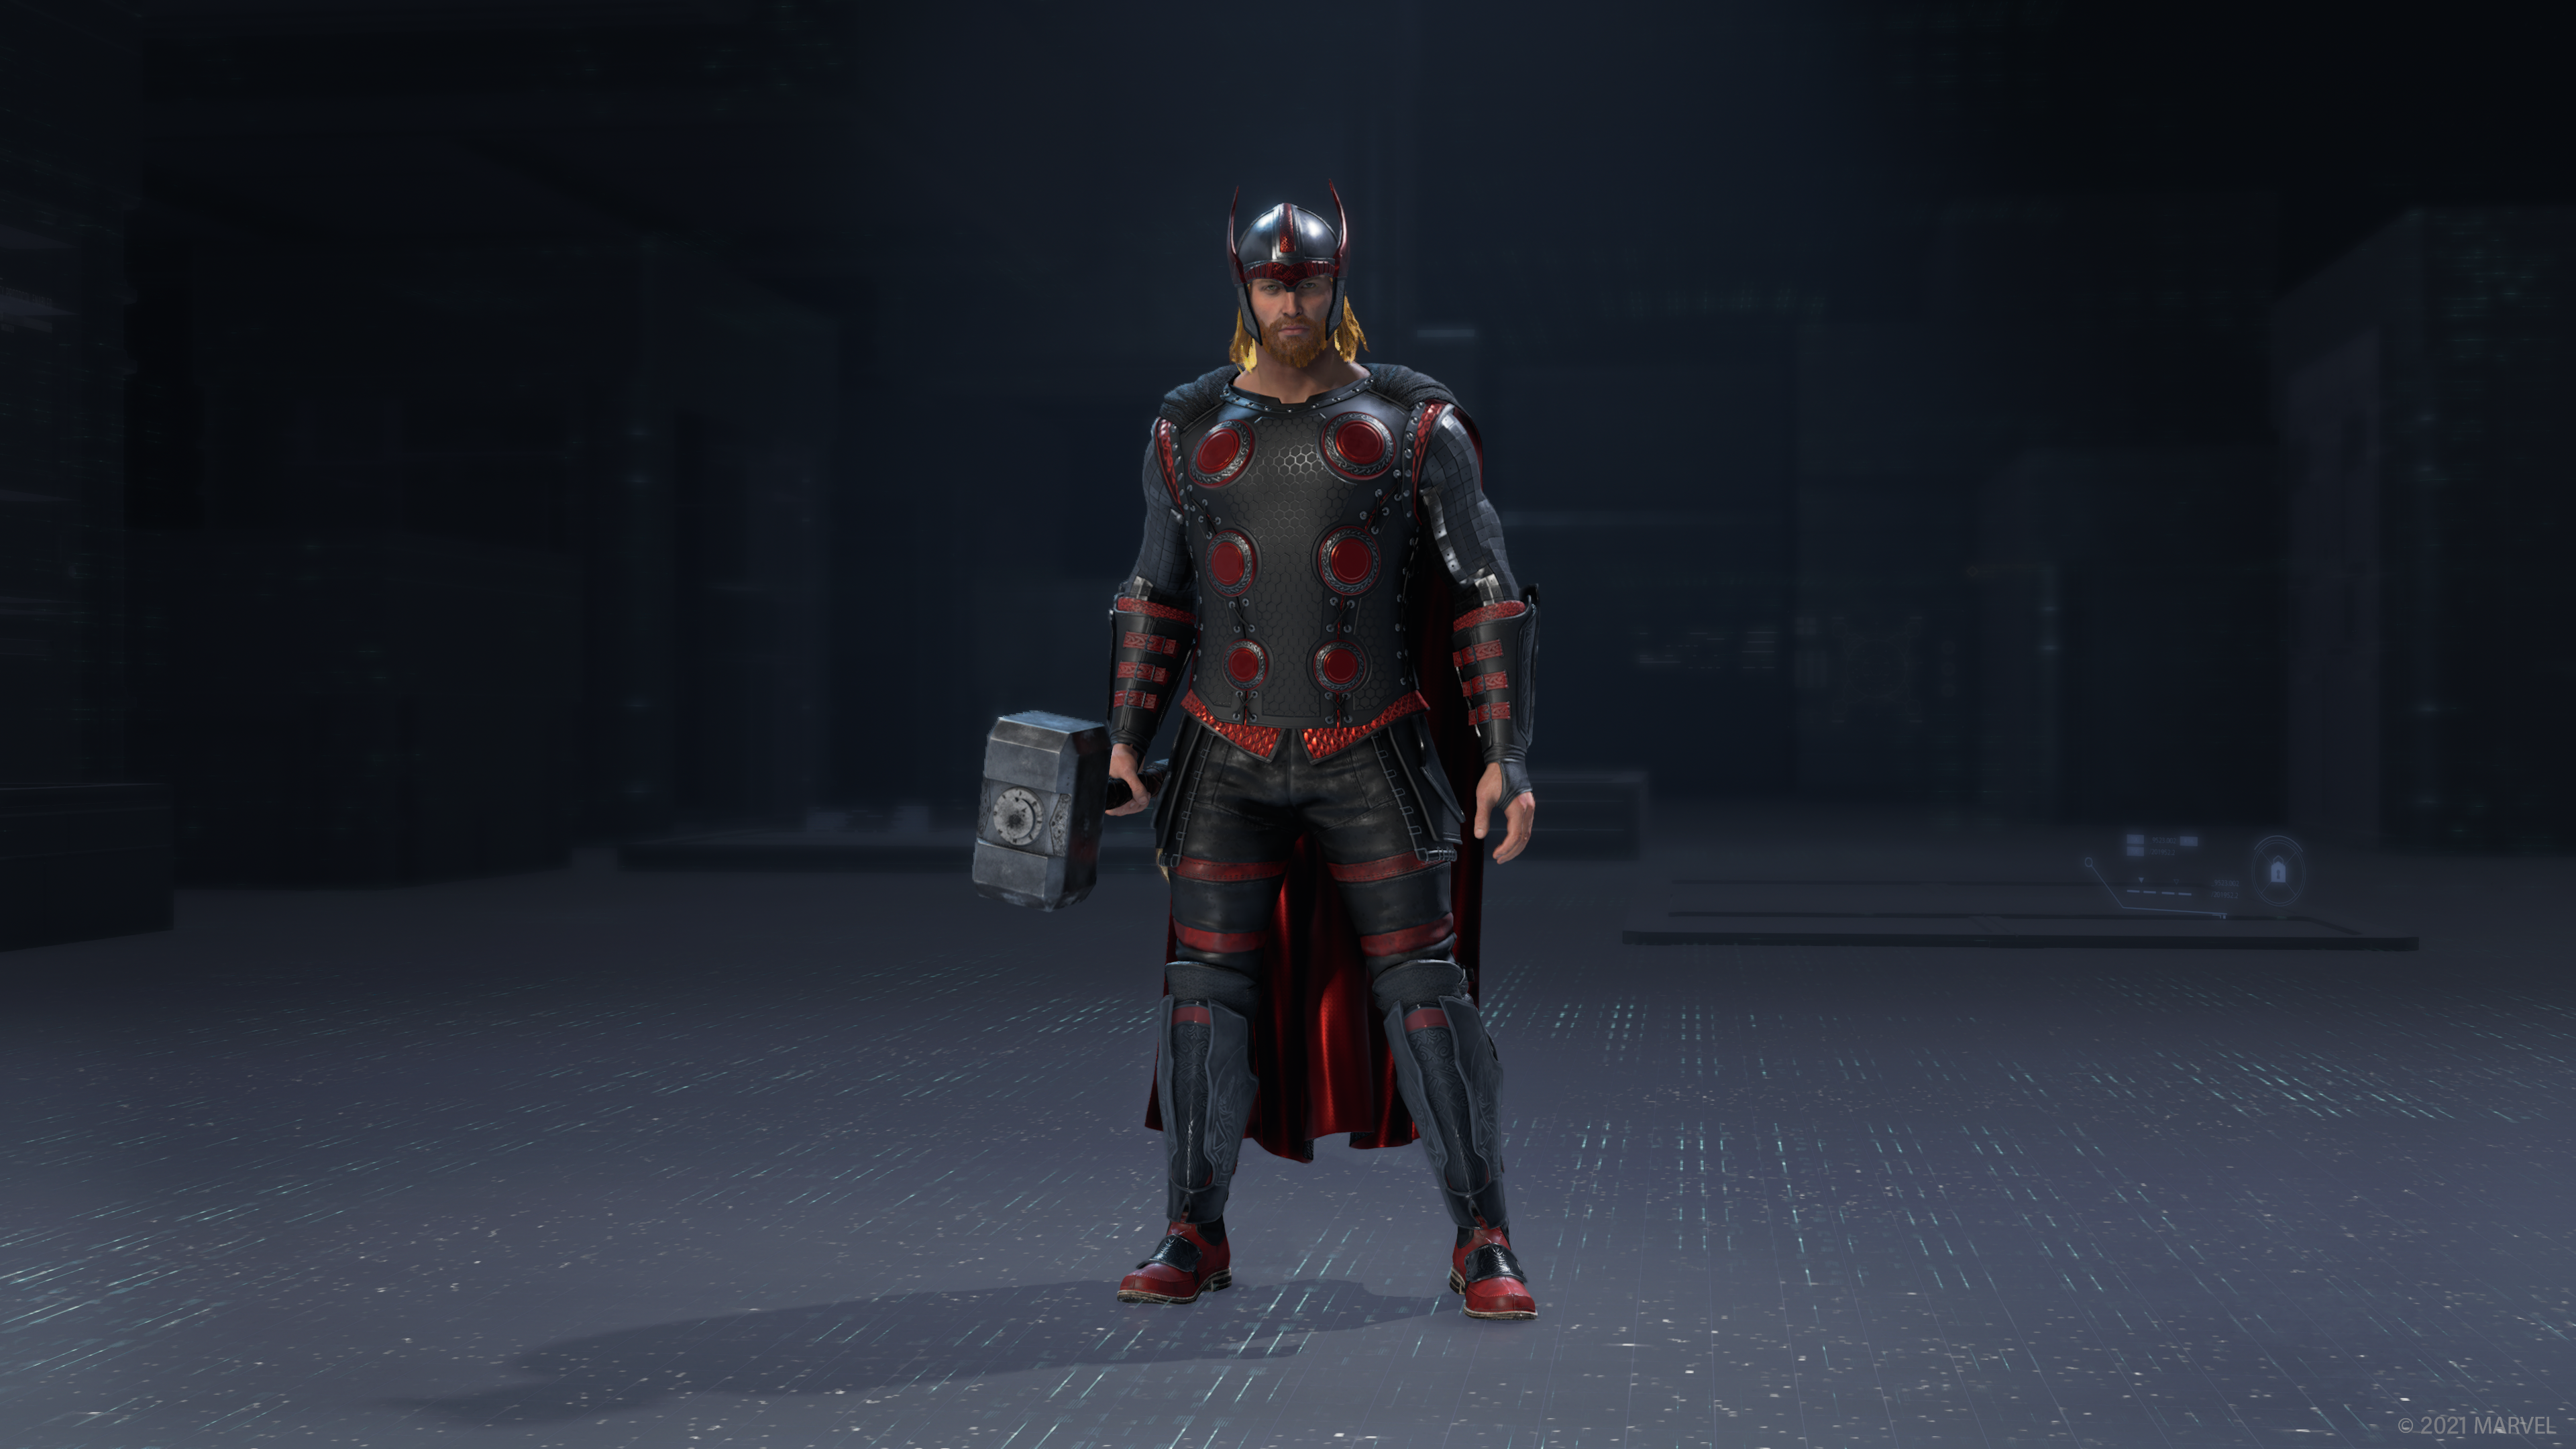 Thor in his Red Room outfit standing in the in-game outfit preview.